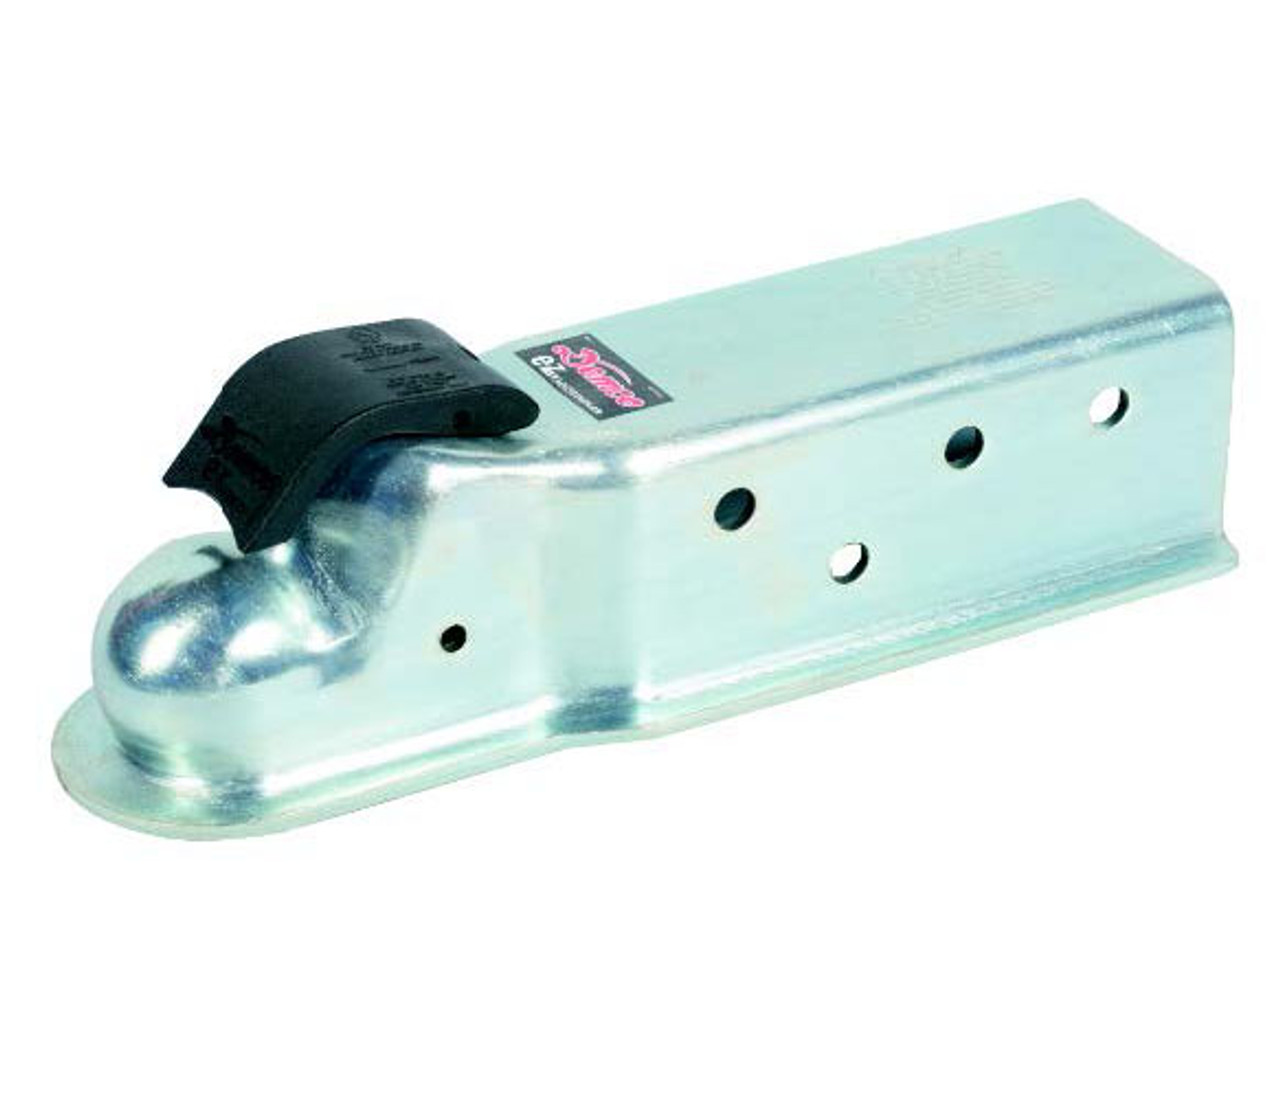 "13203-52 --- Demco eZ Latch Coupler - 18,000 lb Capacity - 2-5/16"" - Silver"